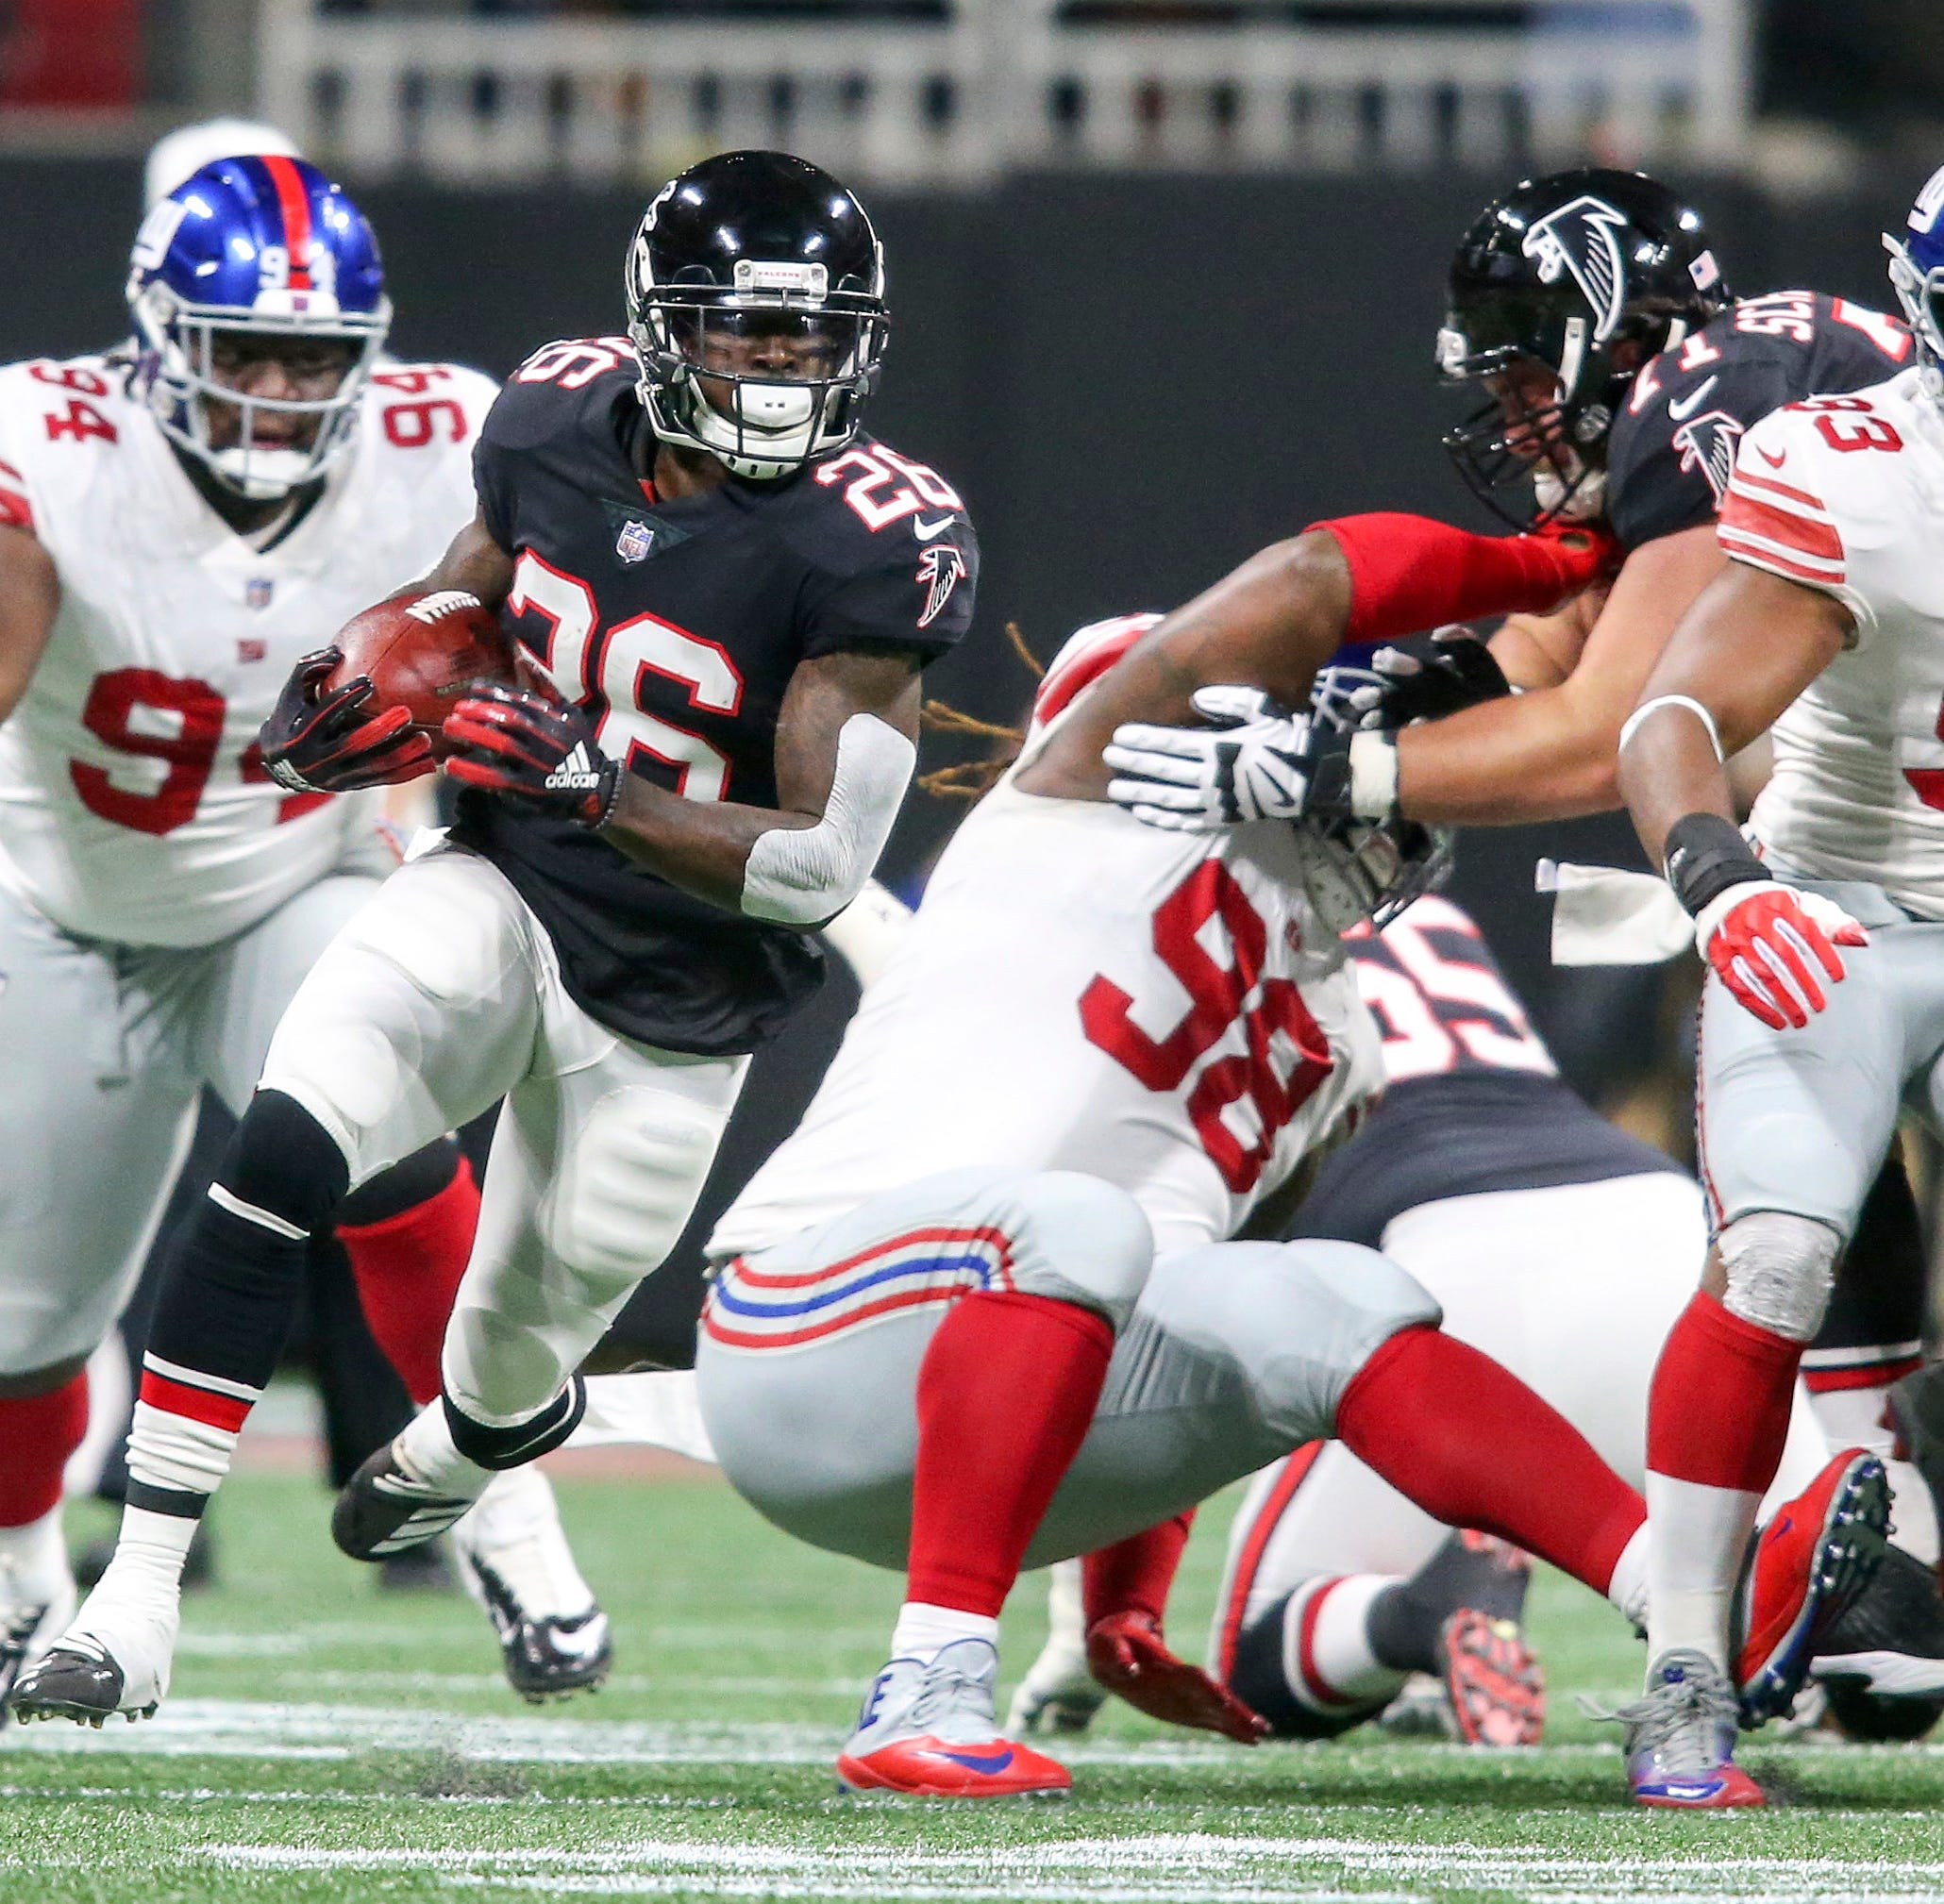 Tevin Coleman and more local players shine in Week 7 of the NFL season